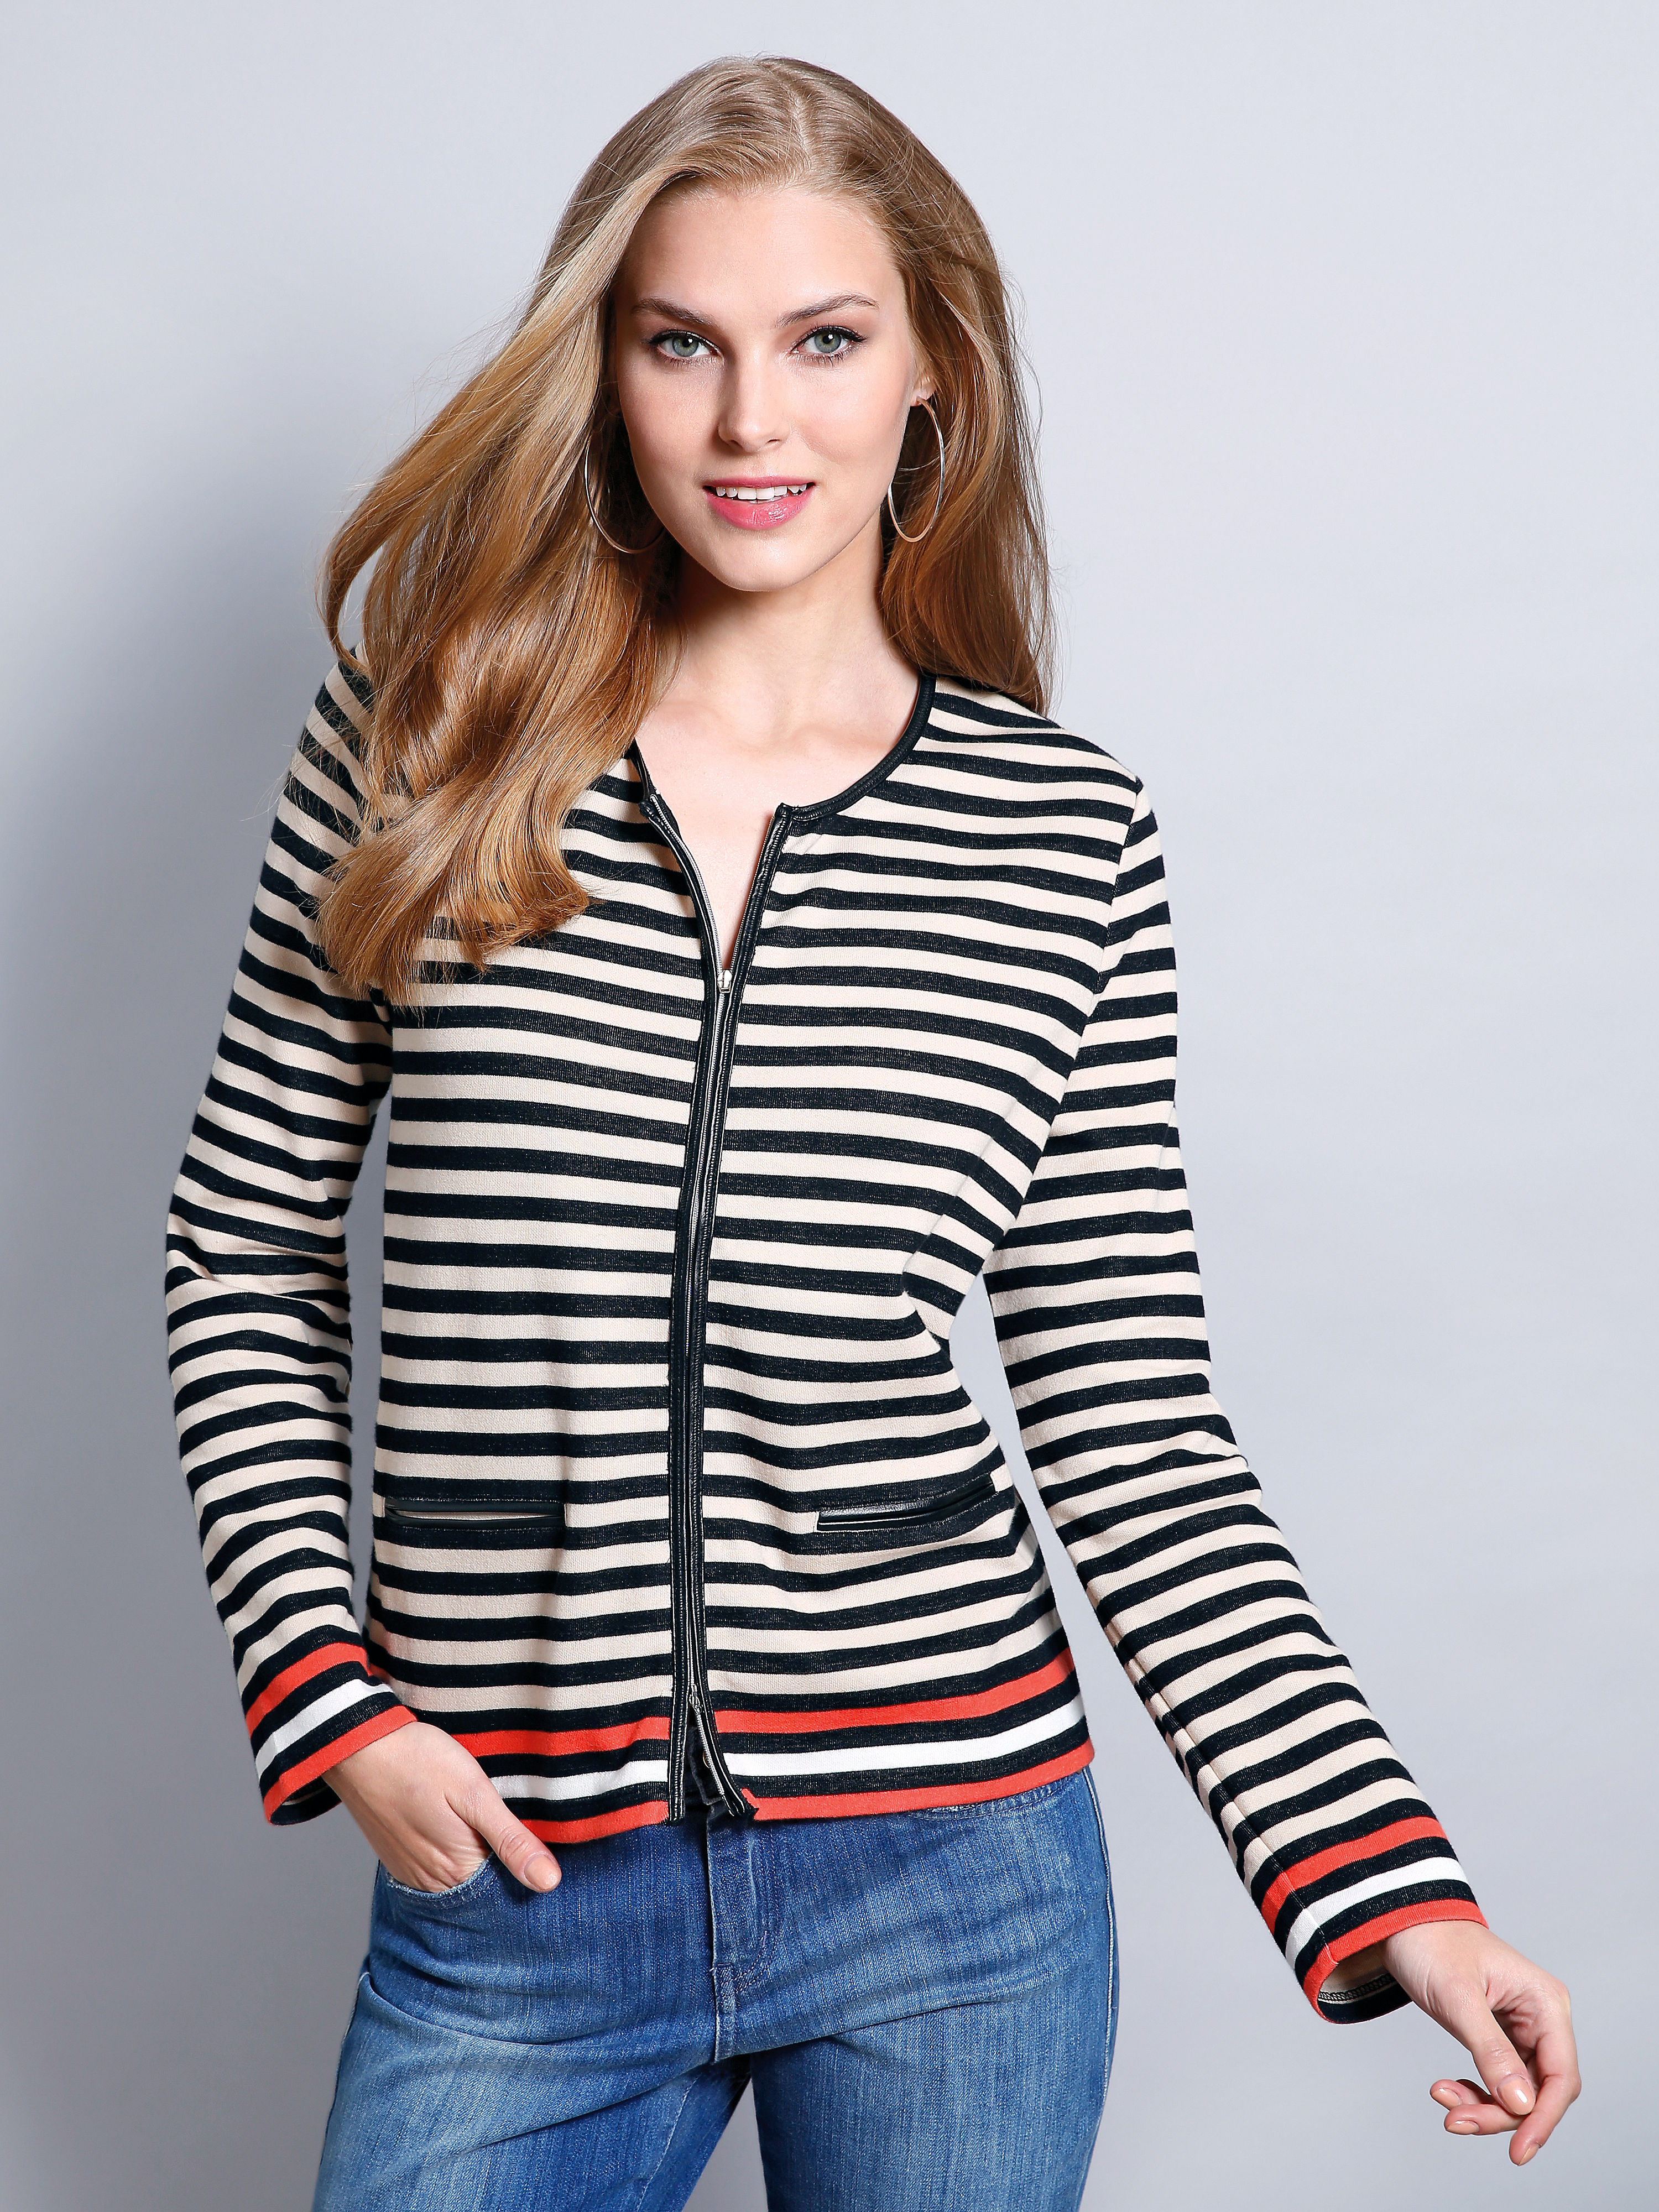 jersey-jacket-from-peter-hahn-multicoloured